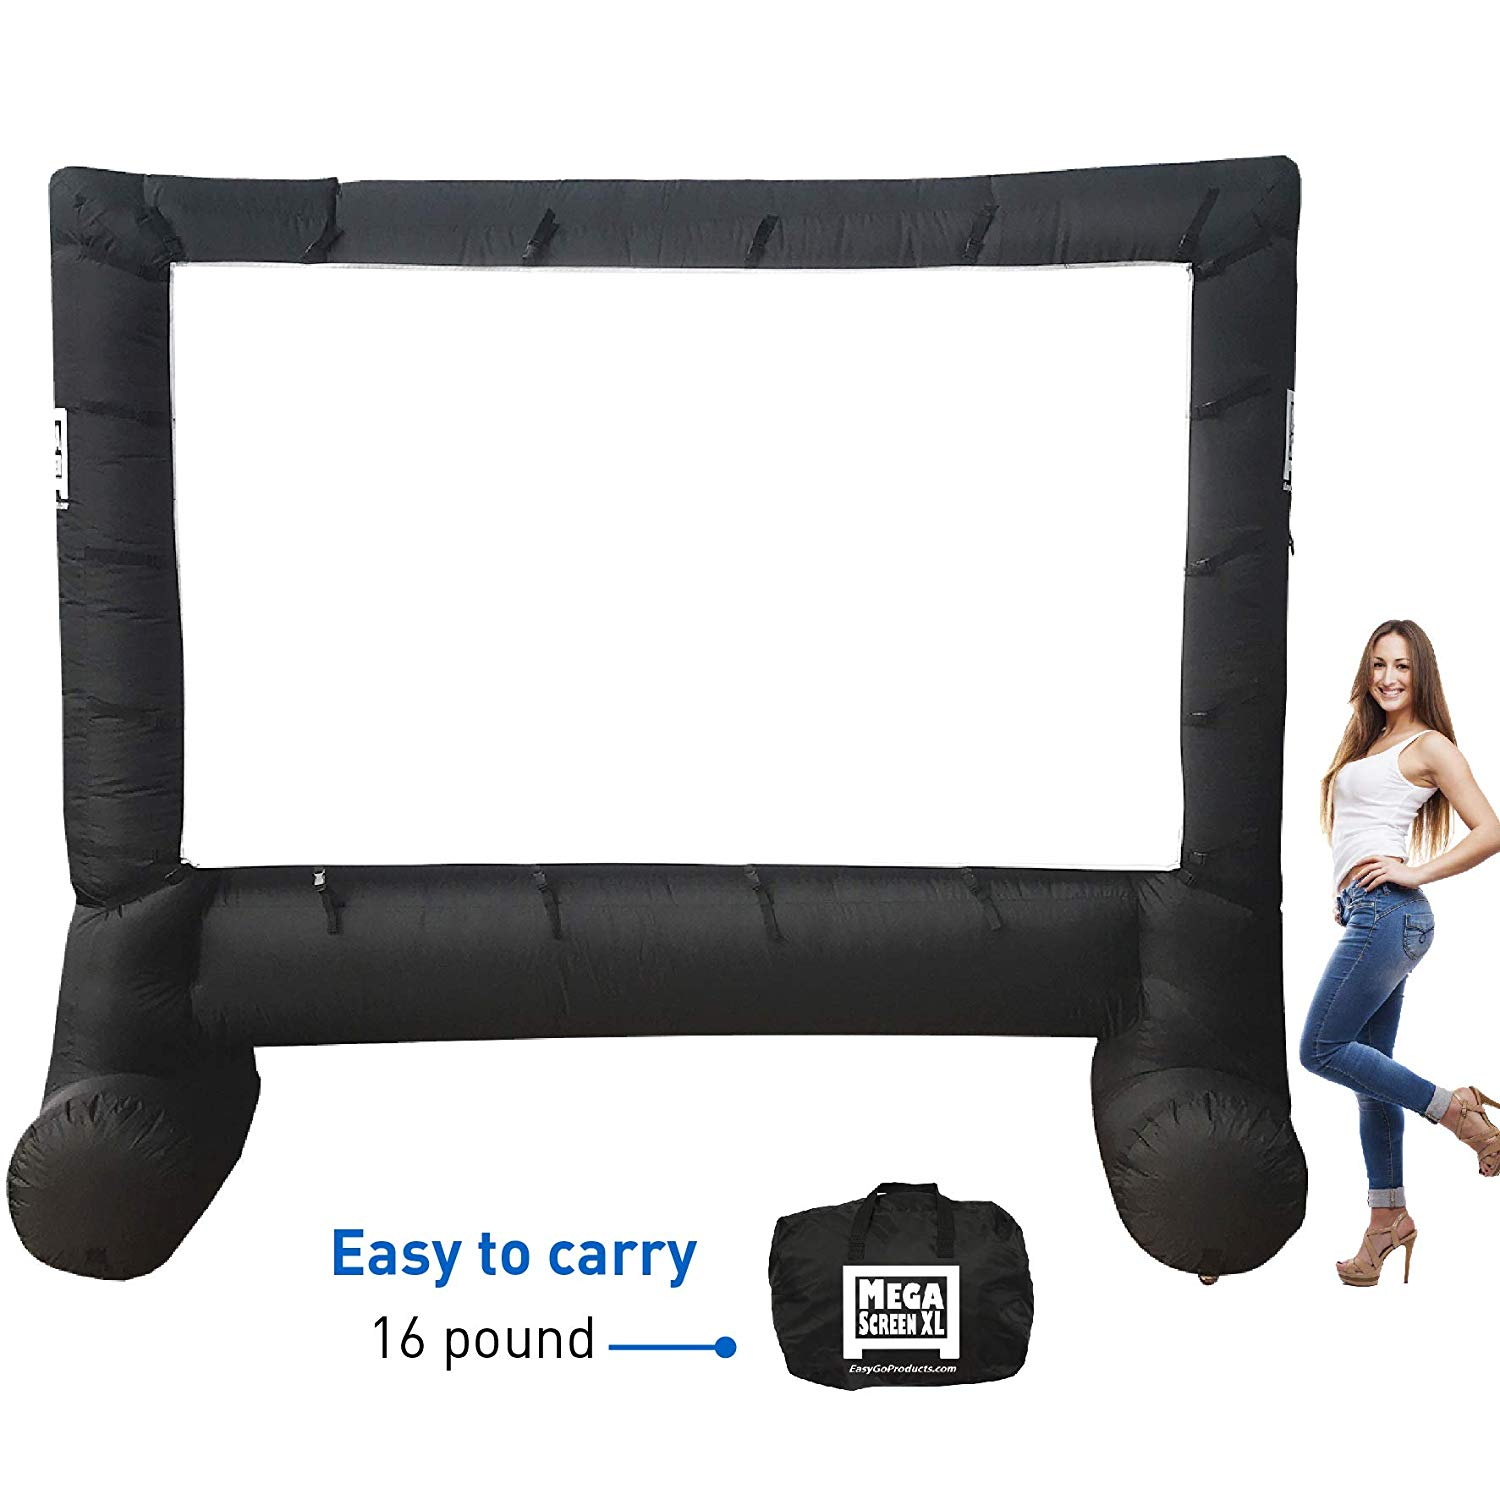 Inflatable Movie Screen2.jpg